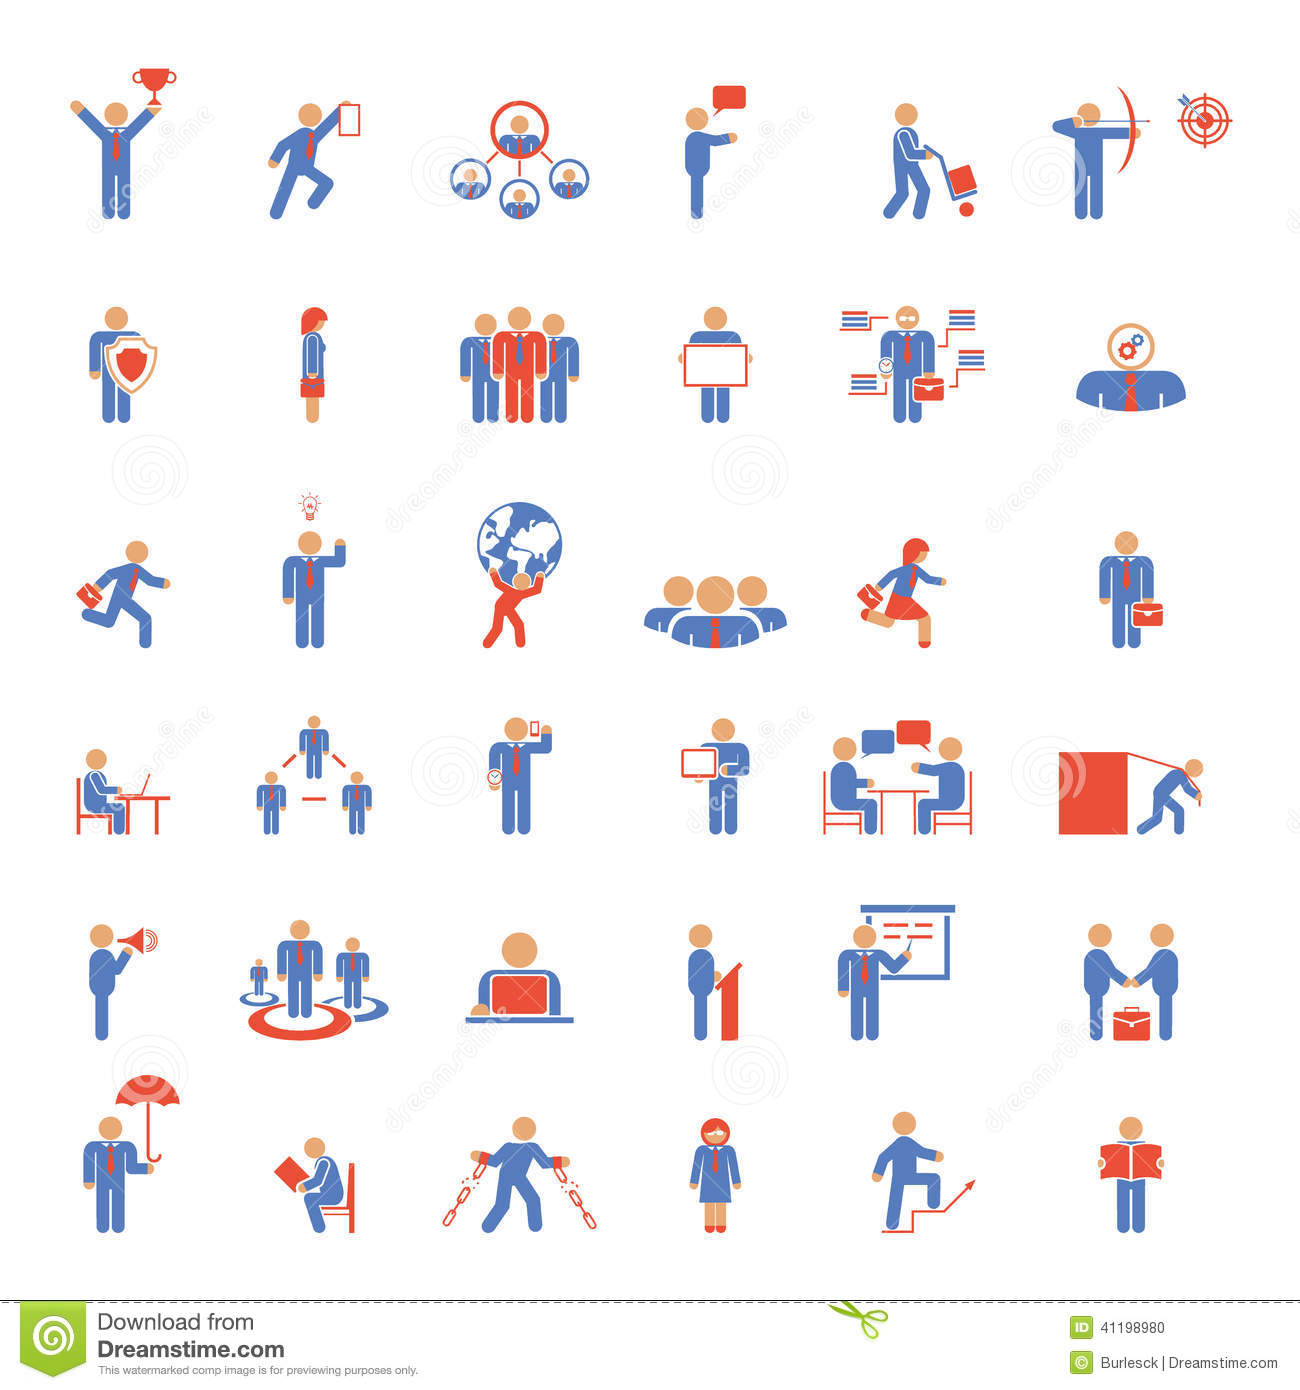 12 Blue Vector Meetings Images